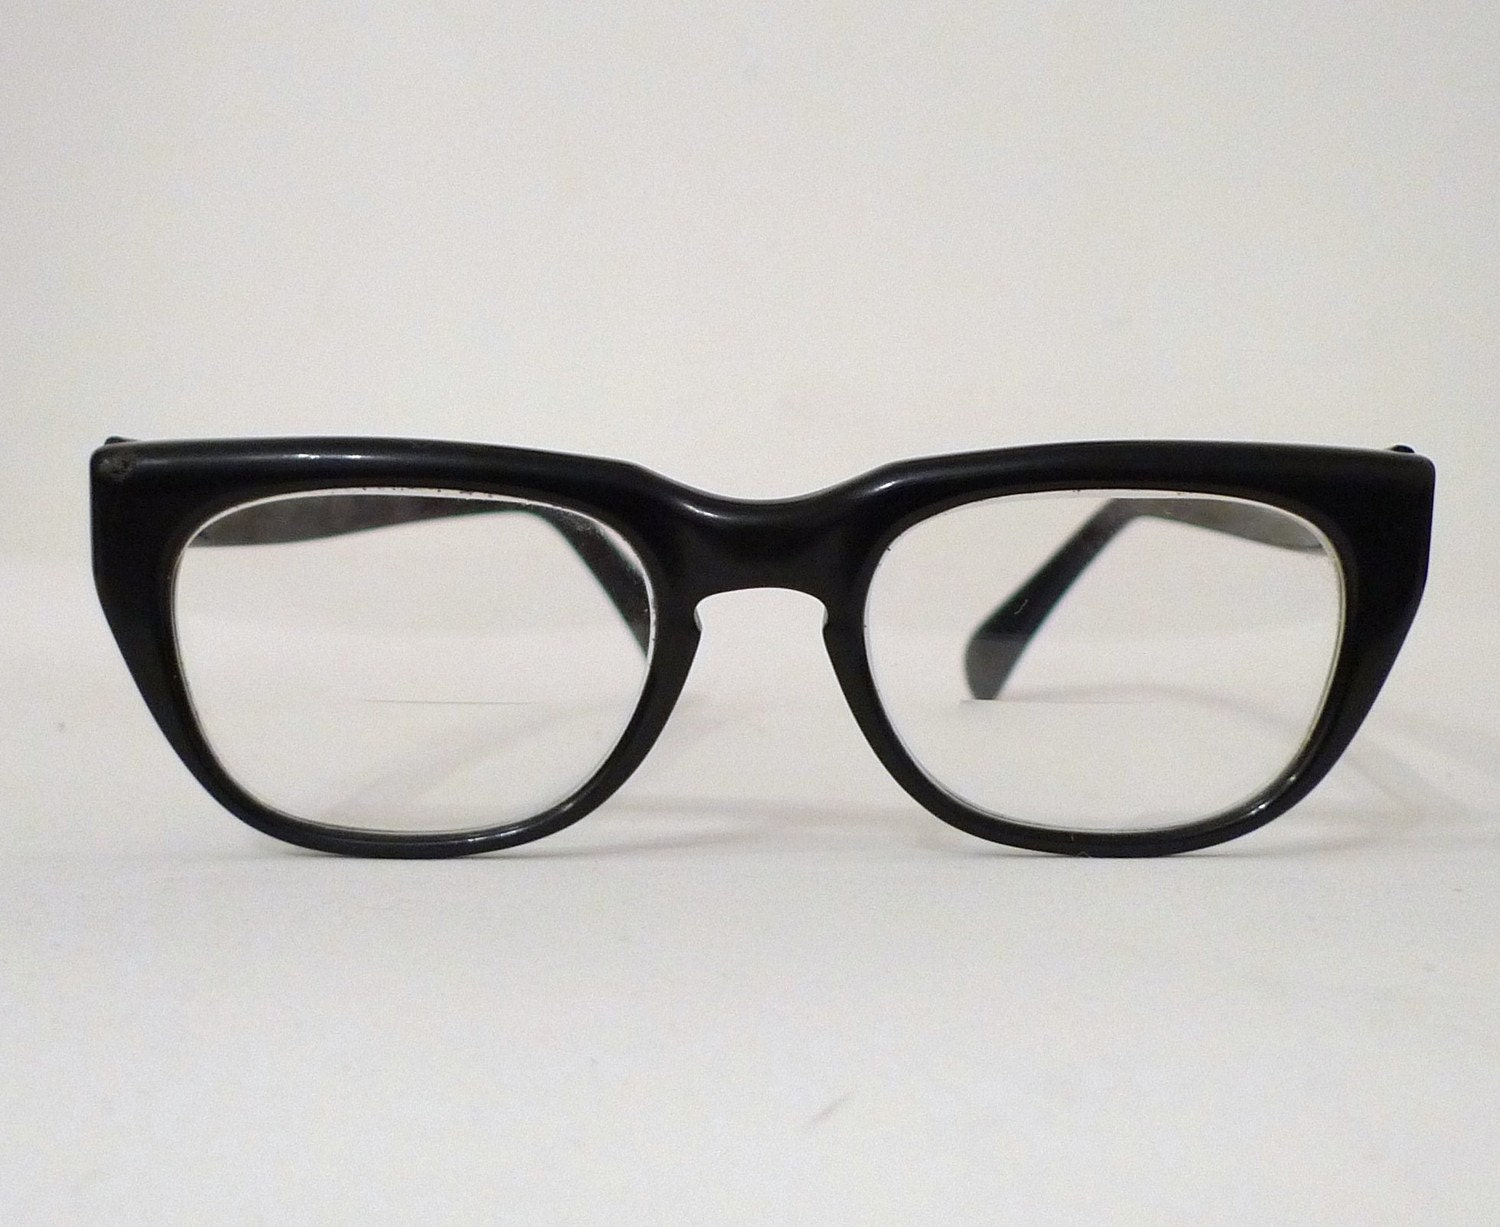 Black Horn Rimmed USA Eyeglasses, Sixties, Classic Mad Men, Birth Control Prescription Eye Glass Frames 1950s 1960s